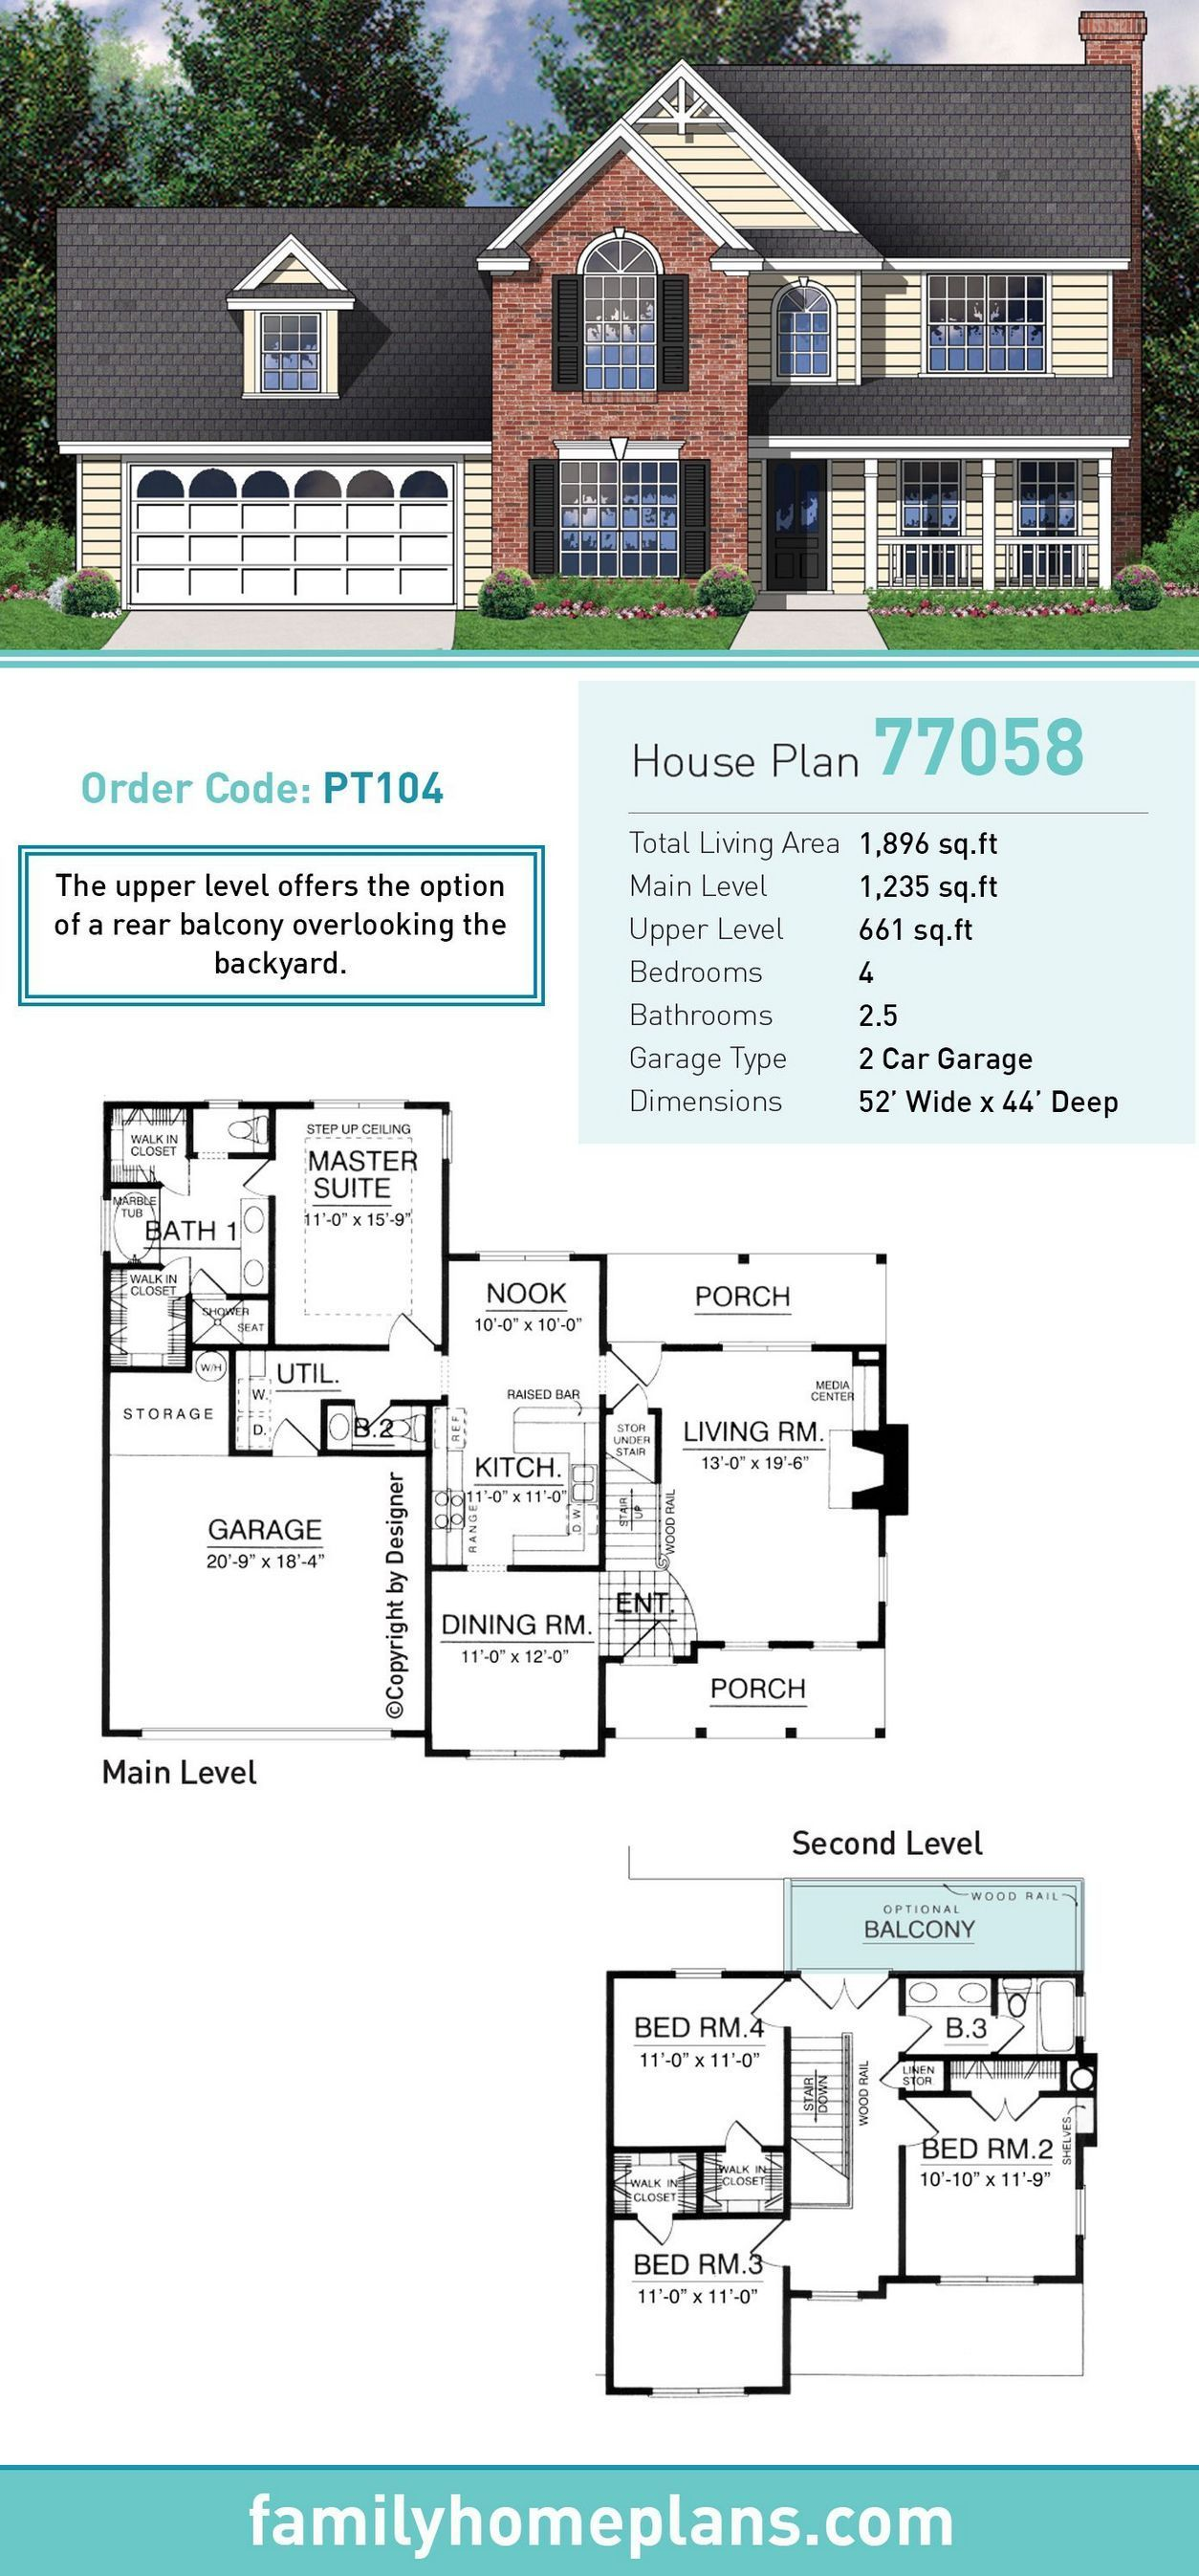 80 Best Farmhouse Design And Plan Ideas Beautiful House Plans Types Of Houses Styles House Plans